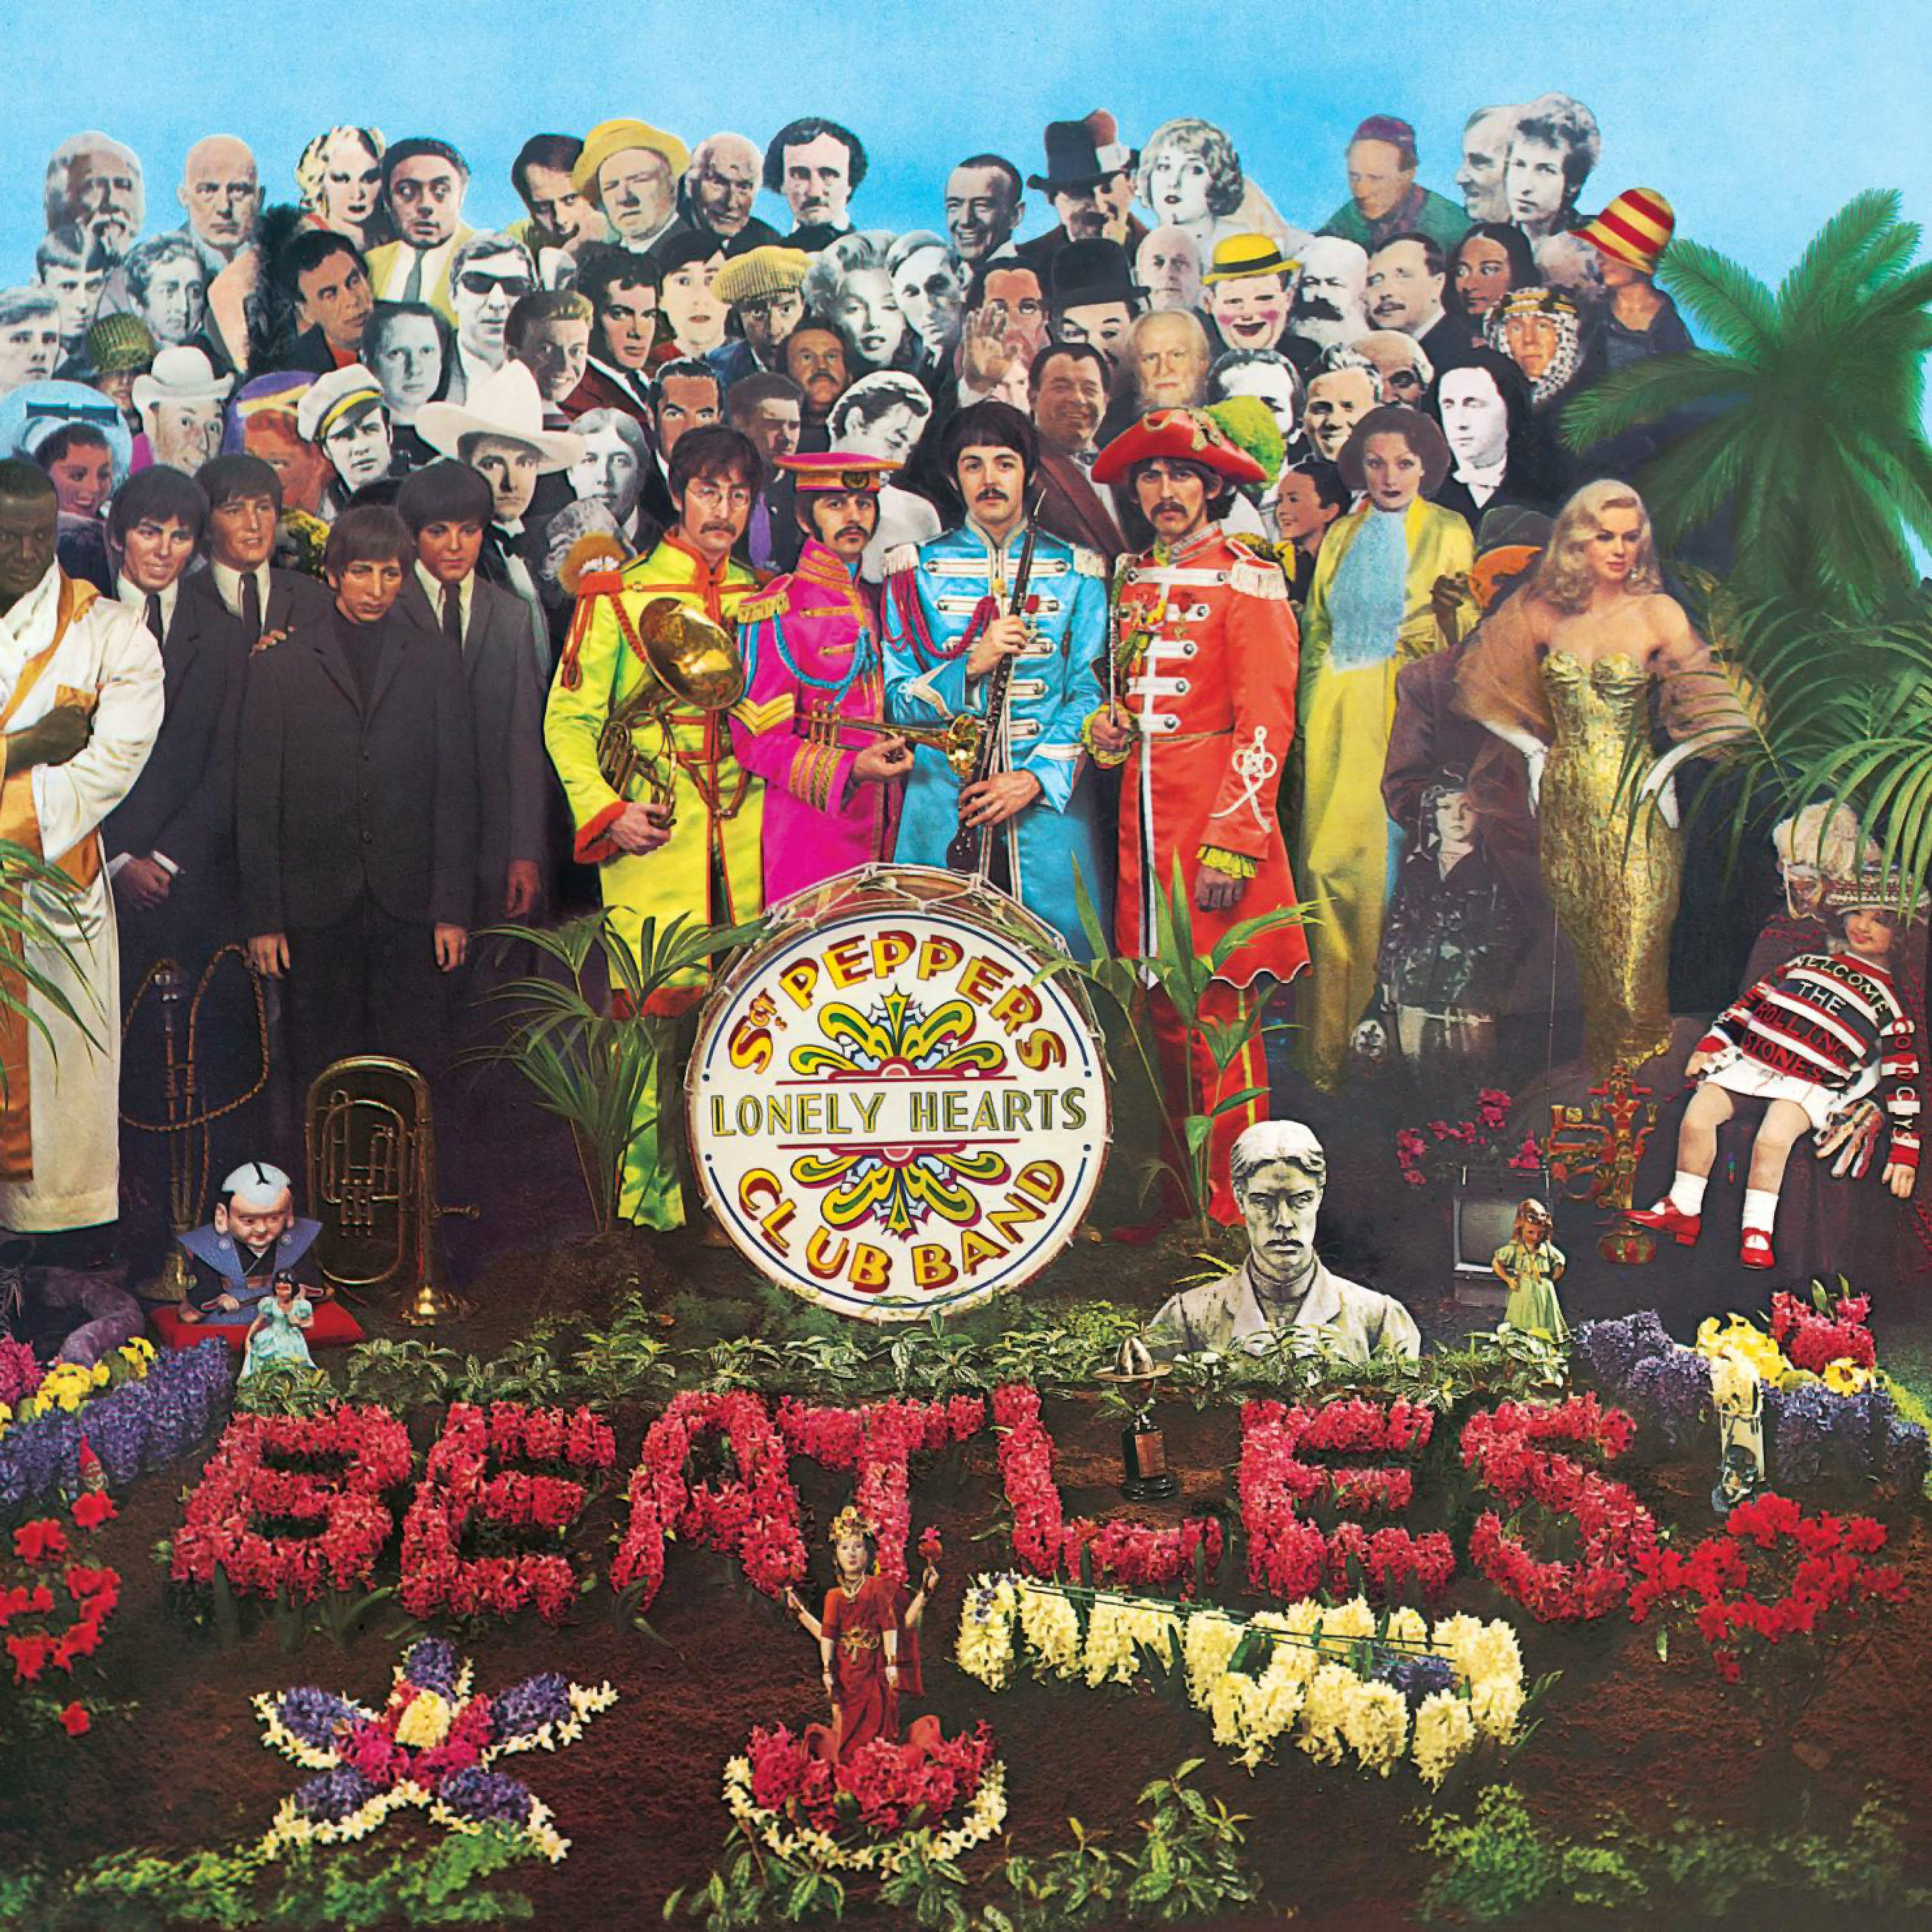 """This year marks the 50th anniversary of one of the Beatles' greatest albums, """"Sgt. Pepper's Lonely Hearts Club Band."""" Take a look back behind the music (including some of the best Beatles songs) with this memorial video."""